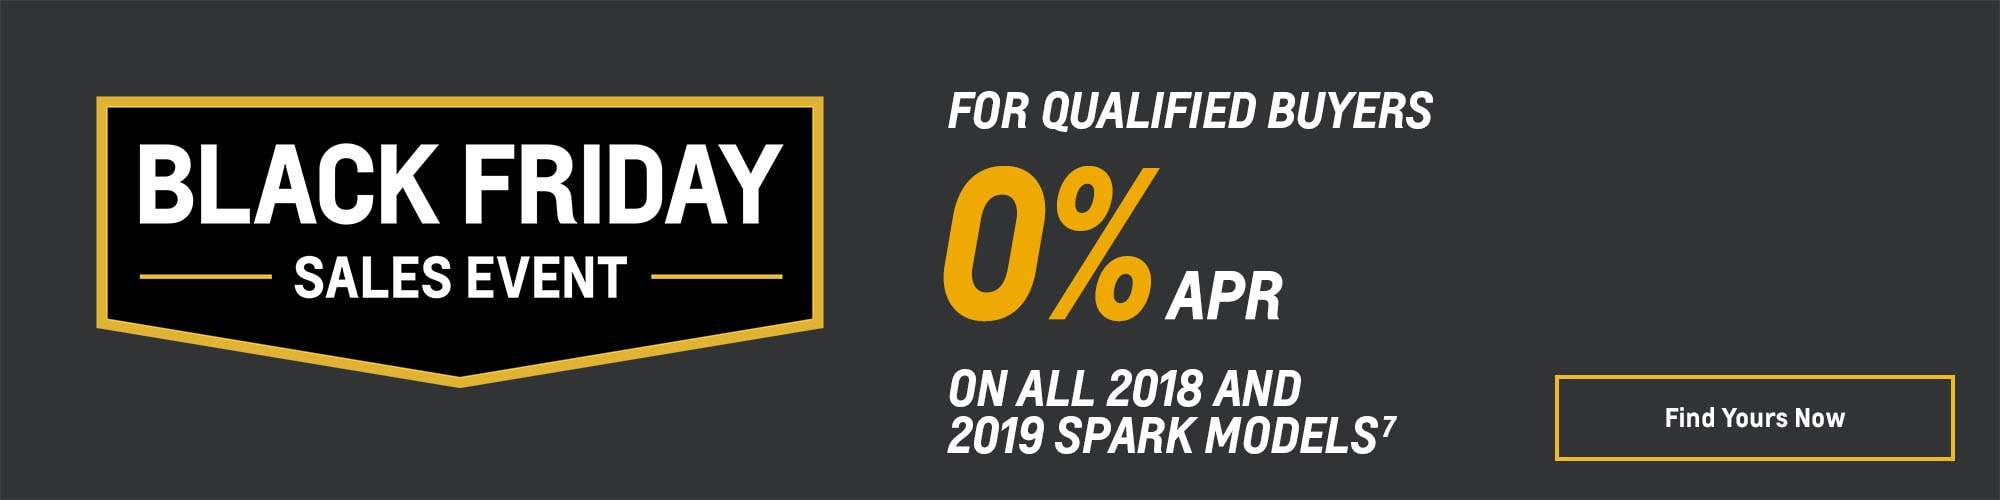 Black Friday Chevy Deals and Offers: Spark 0% APR